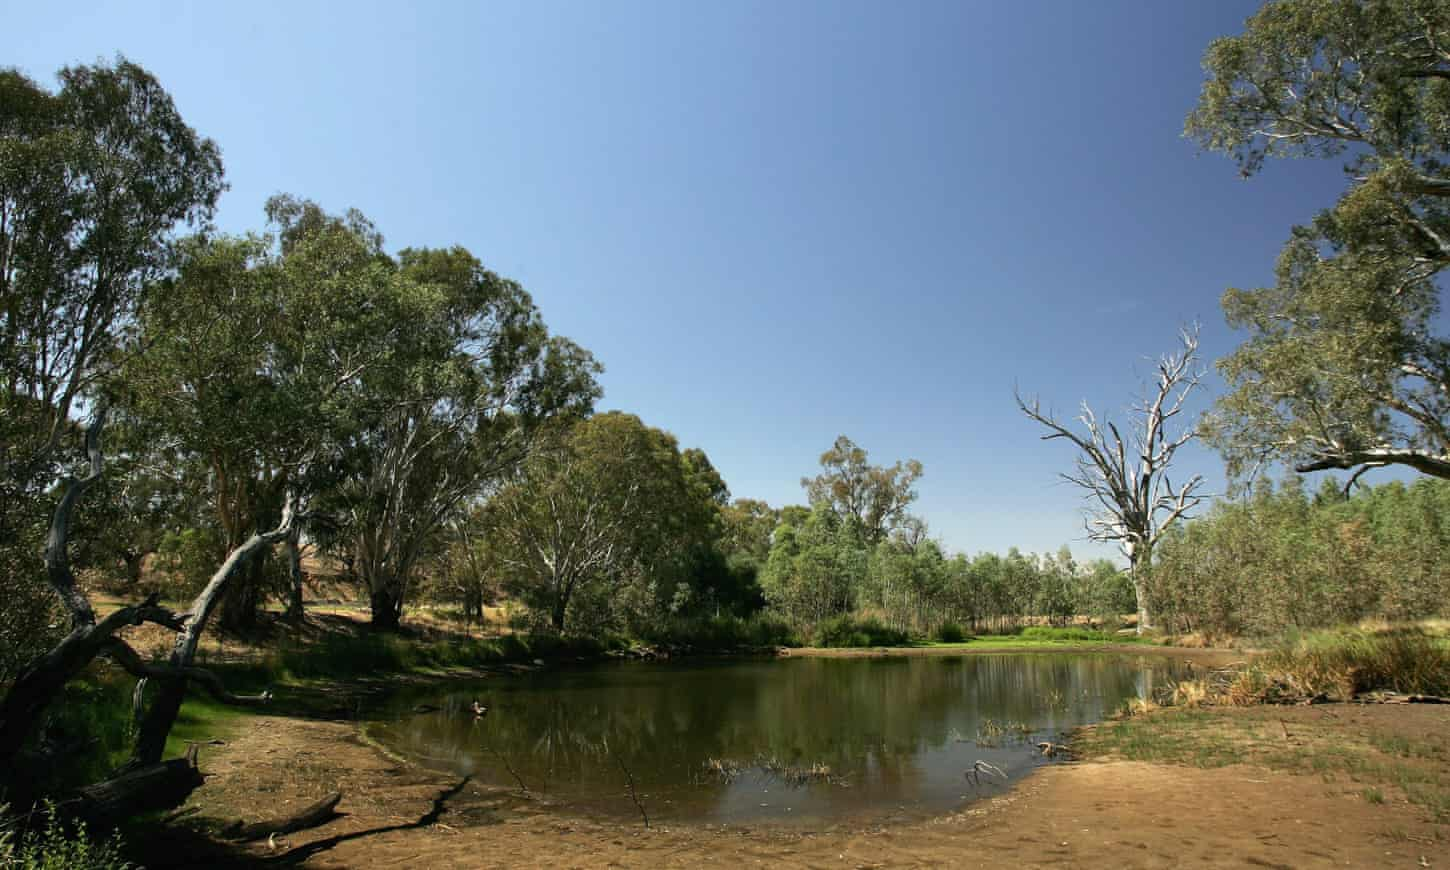 48 hours in Albury, NSW: what to do, where to go